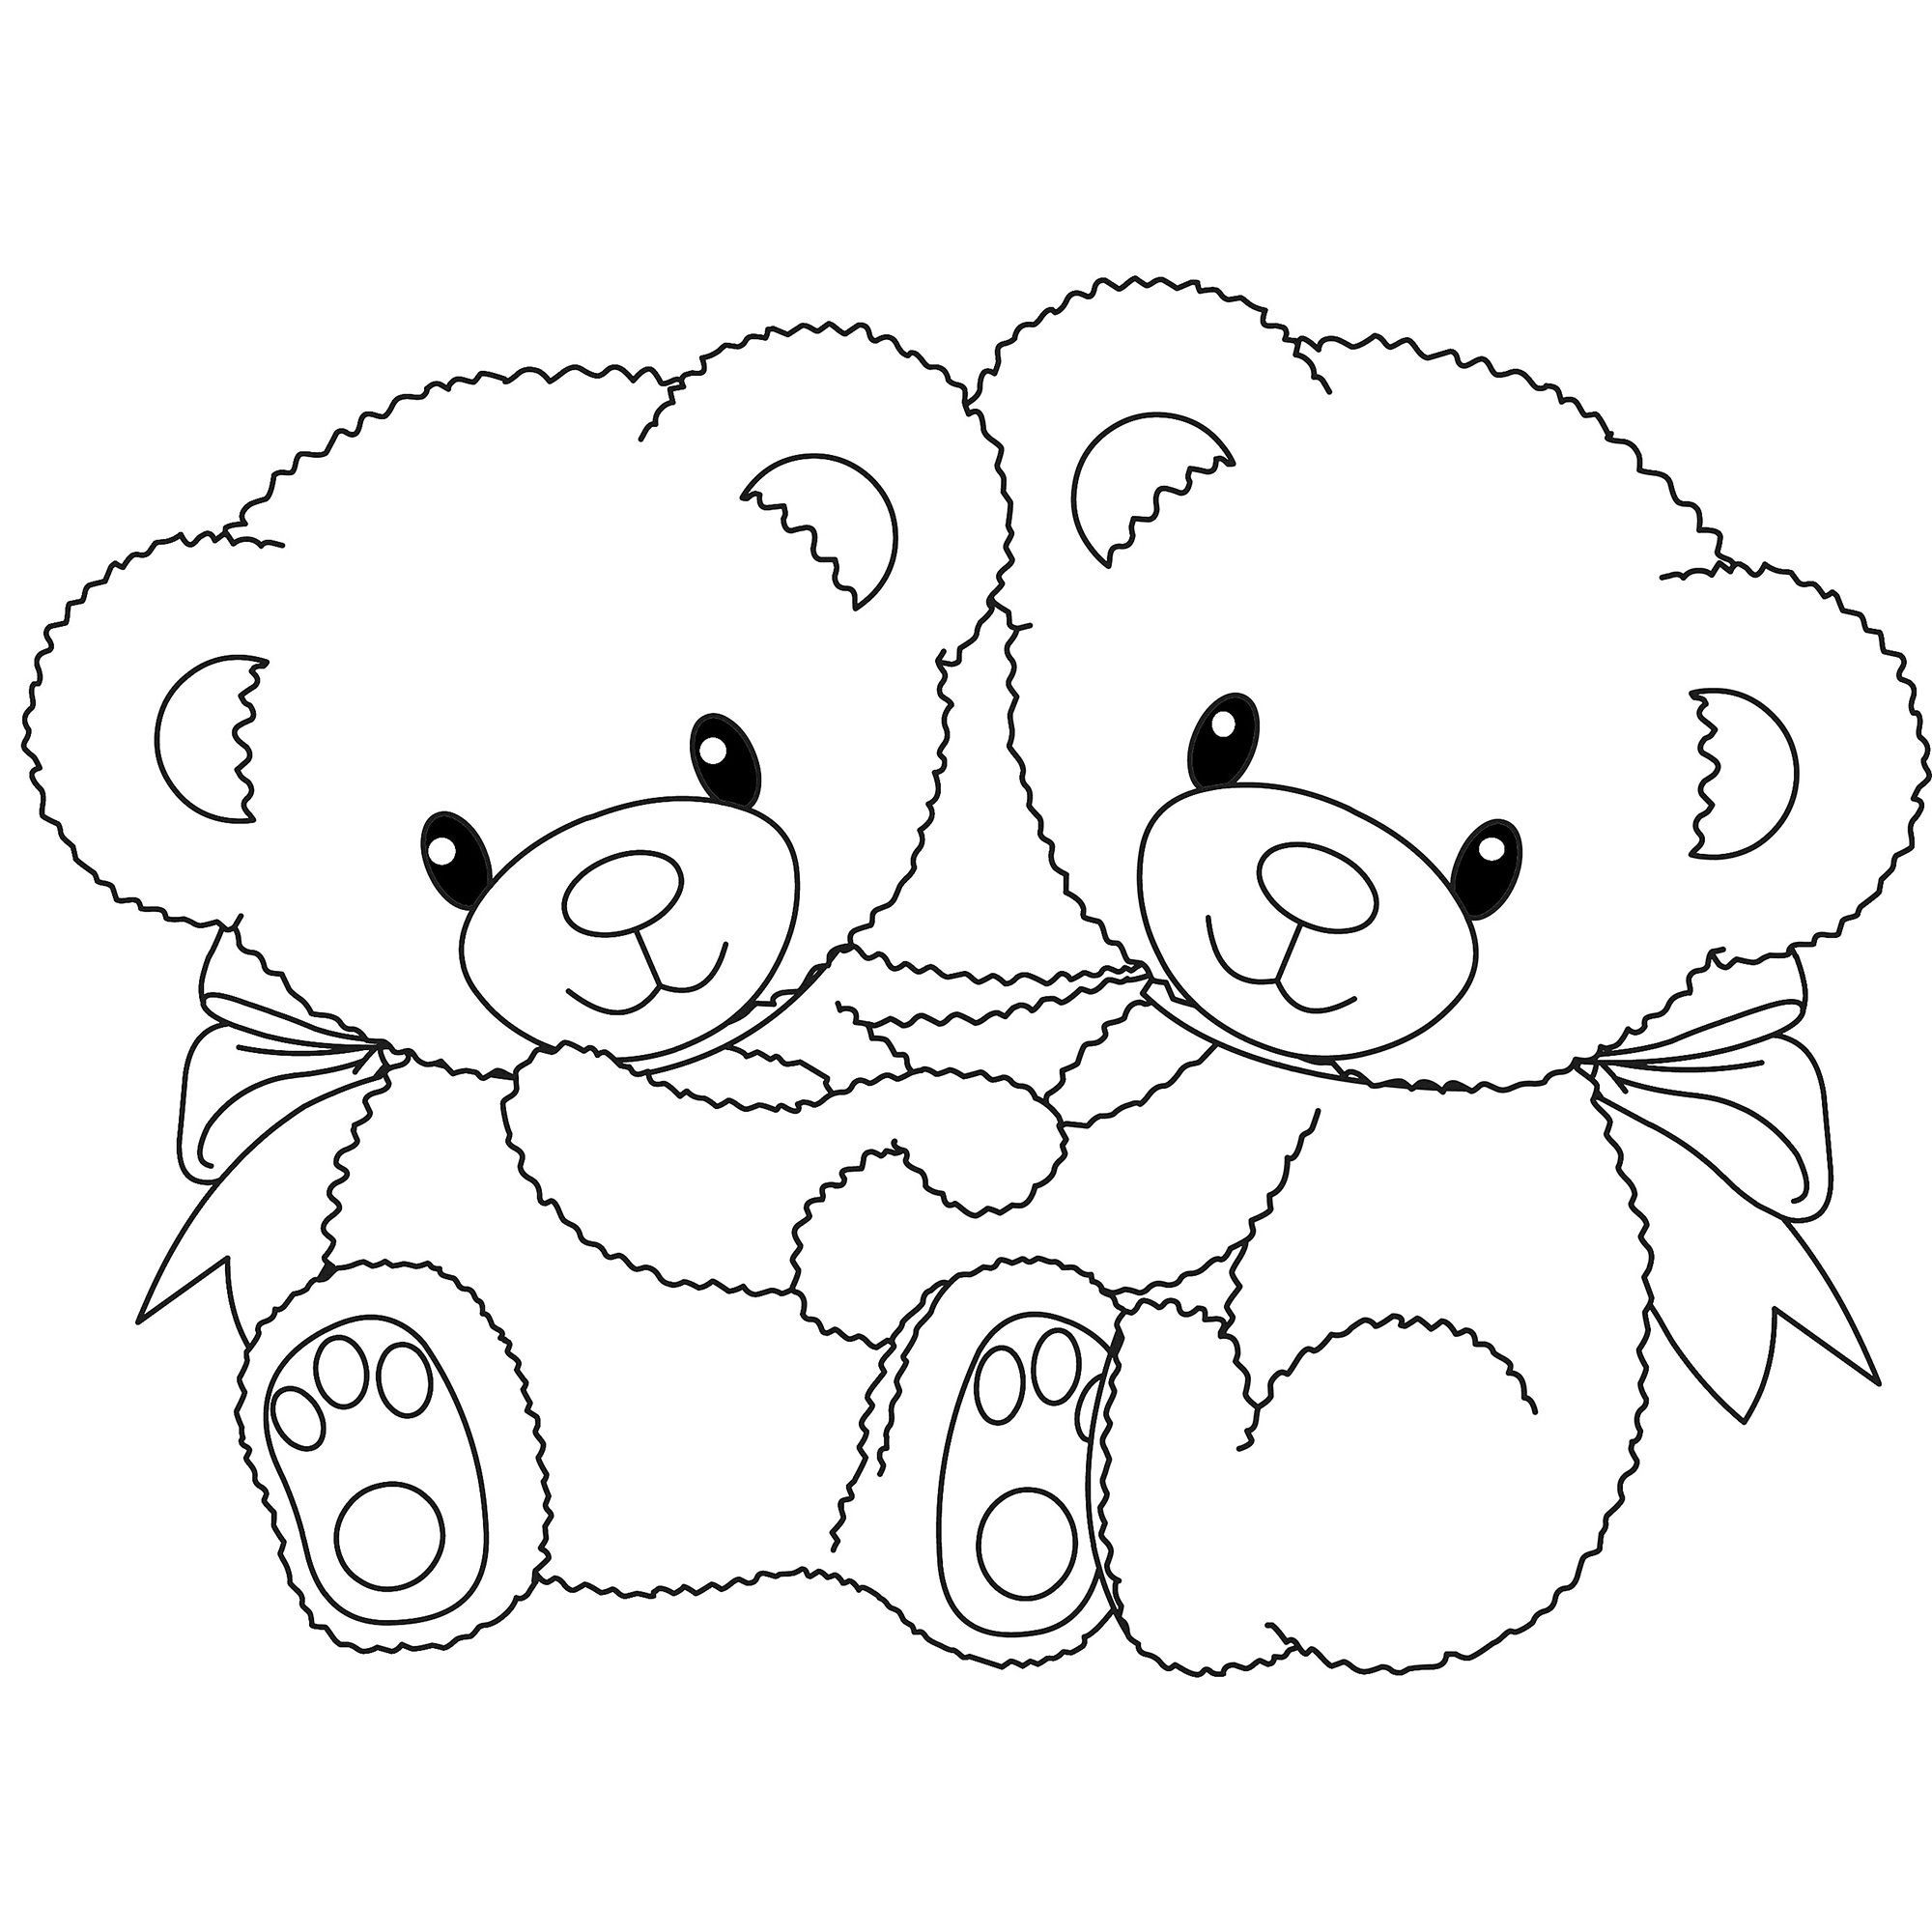 Grab Your New Coloring Pages Bear Download Http Gethighit Com New Coloring Pages Bea Bear Coloring Pages Teddy Bear Coloring Pages Polar Bear Coloring Page